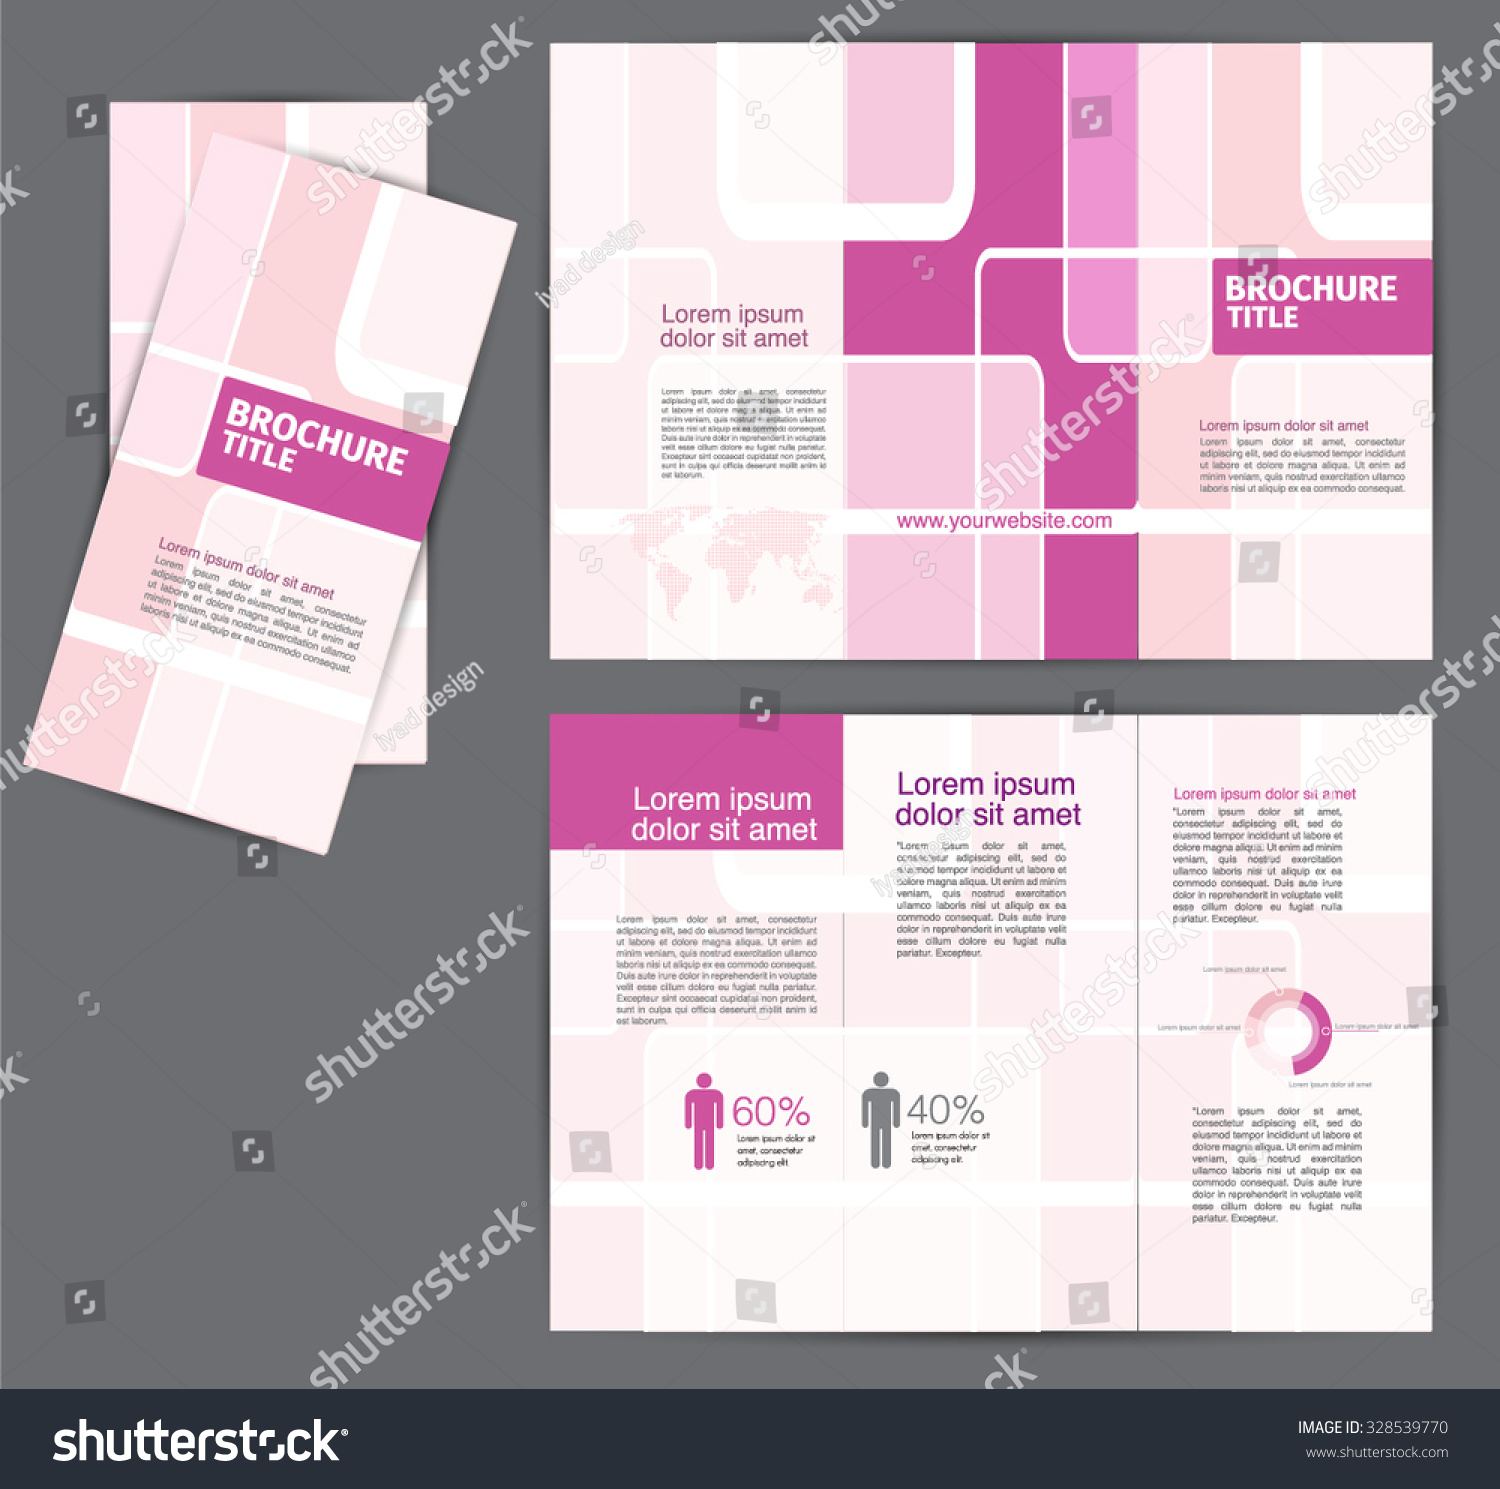 Pink Brochure Template Flyer Design Creative Stock Vector - Mini brochure template